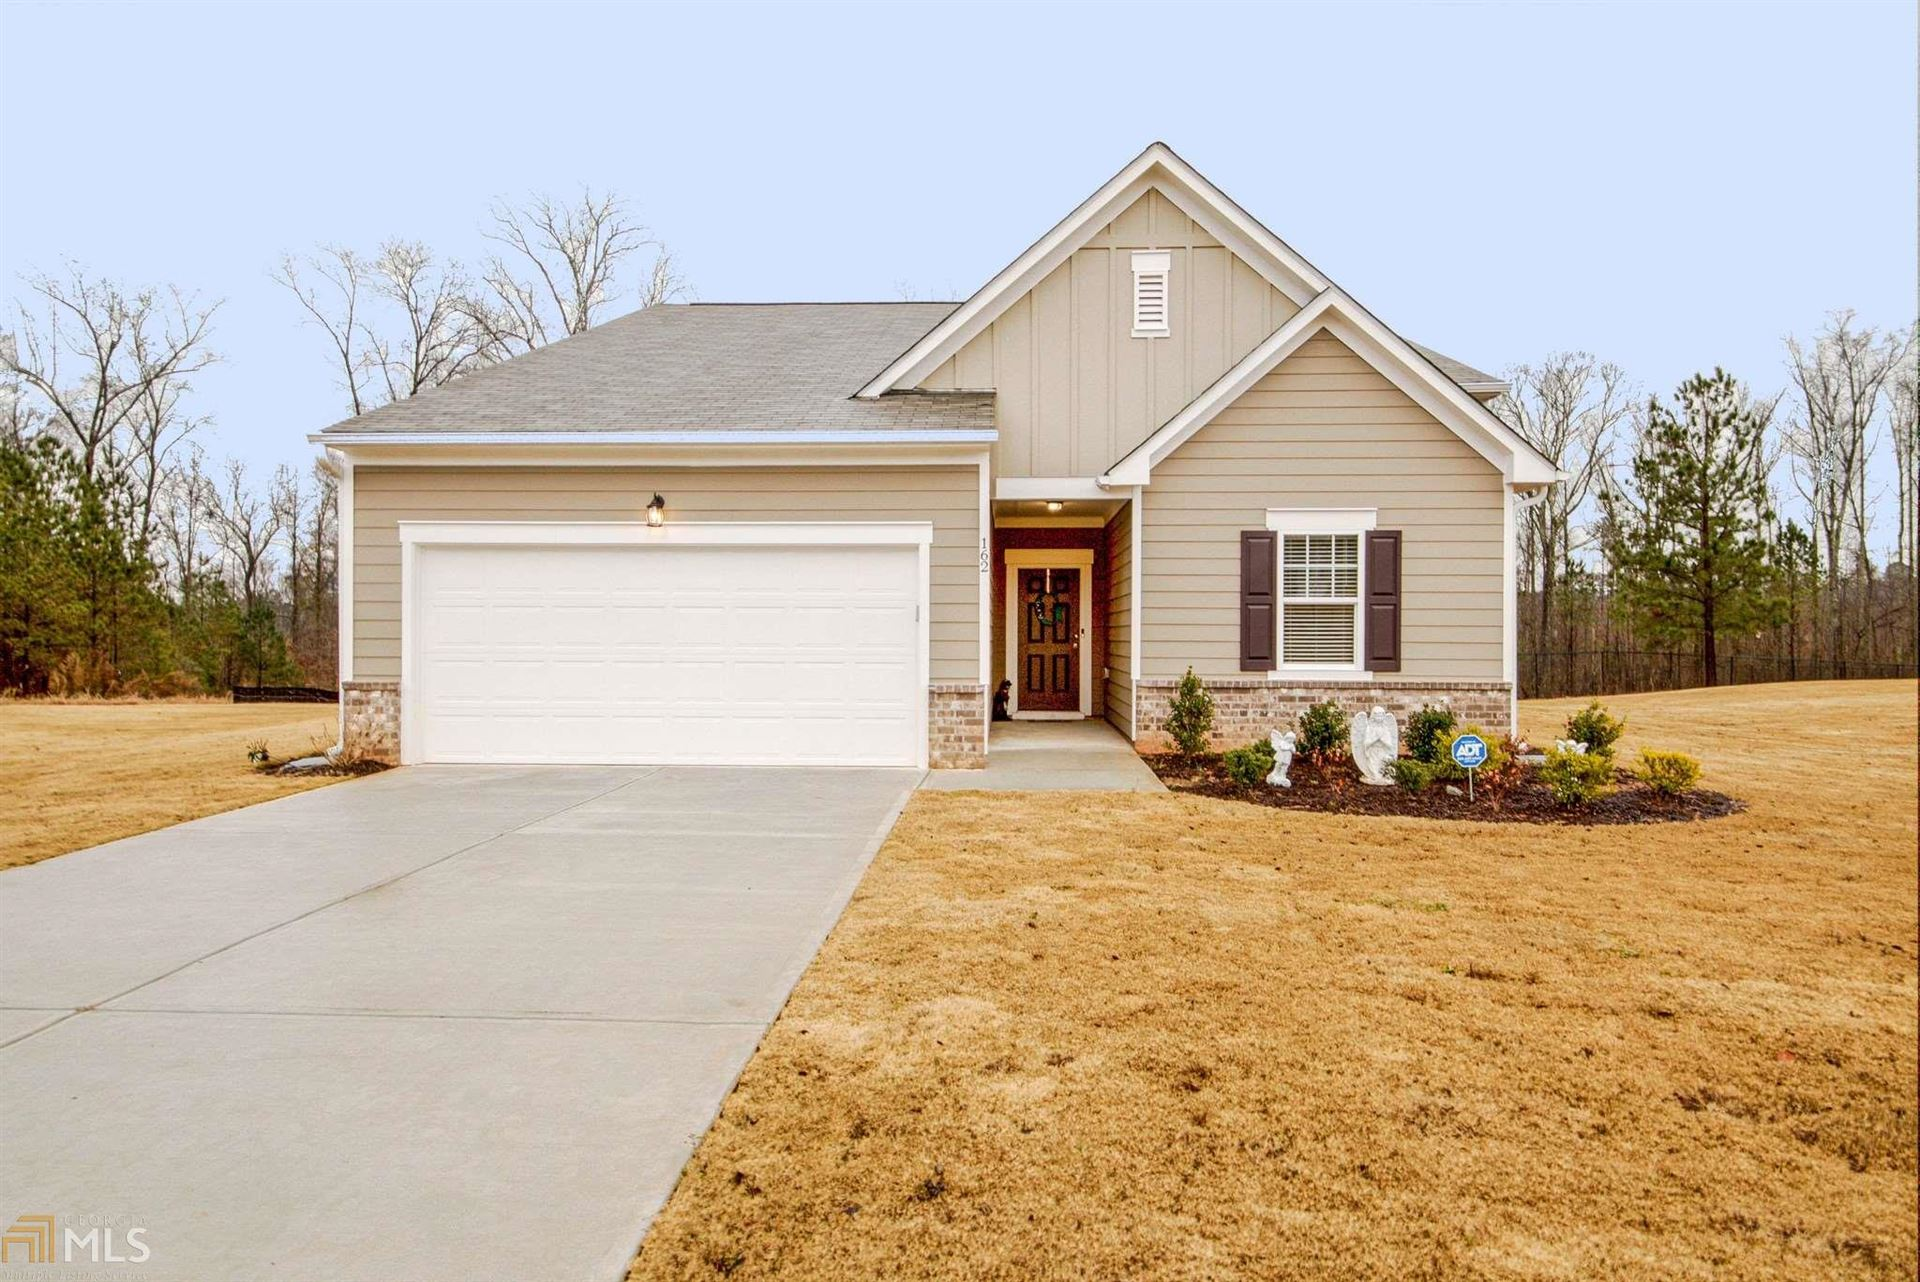 162 Coldwater Way, Griffin, GA 30224 - #: 8910898